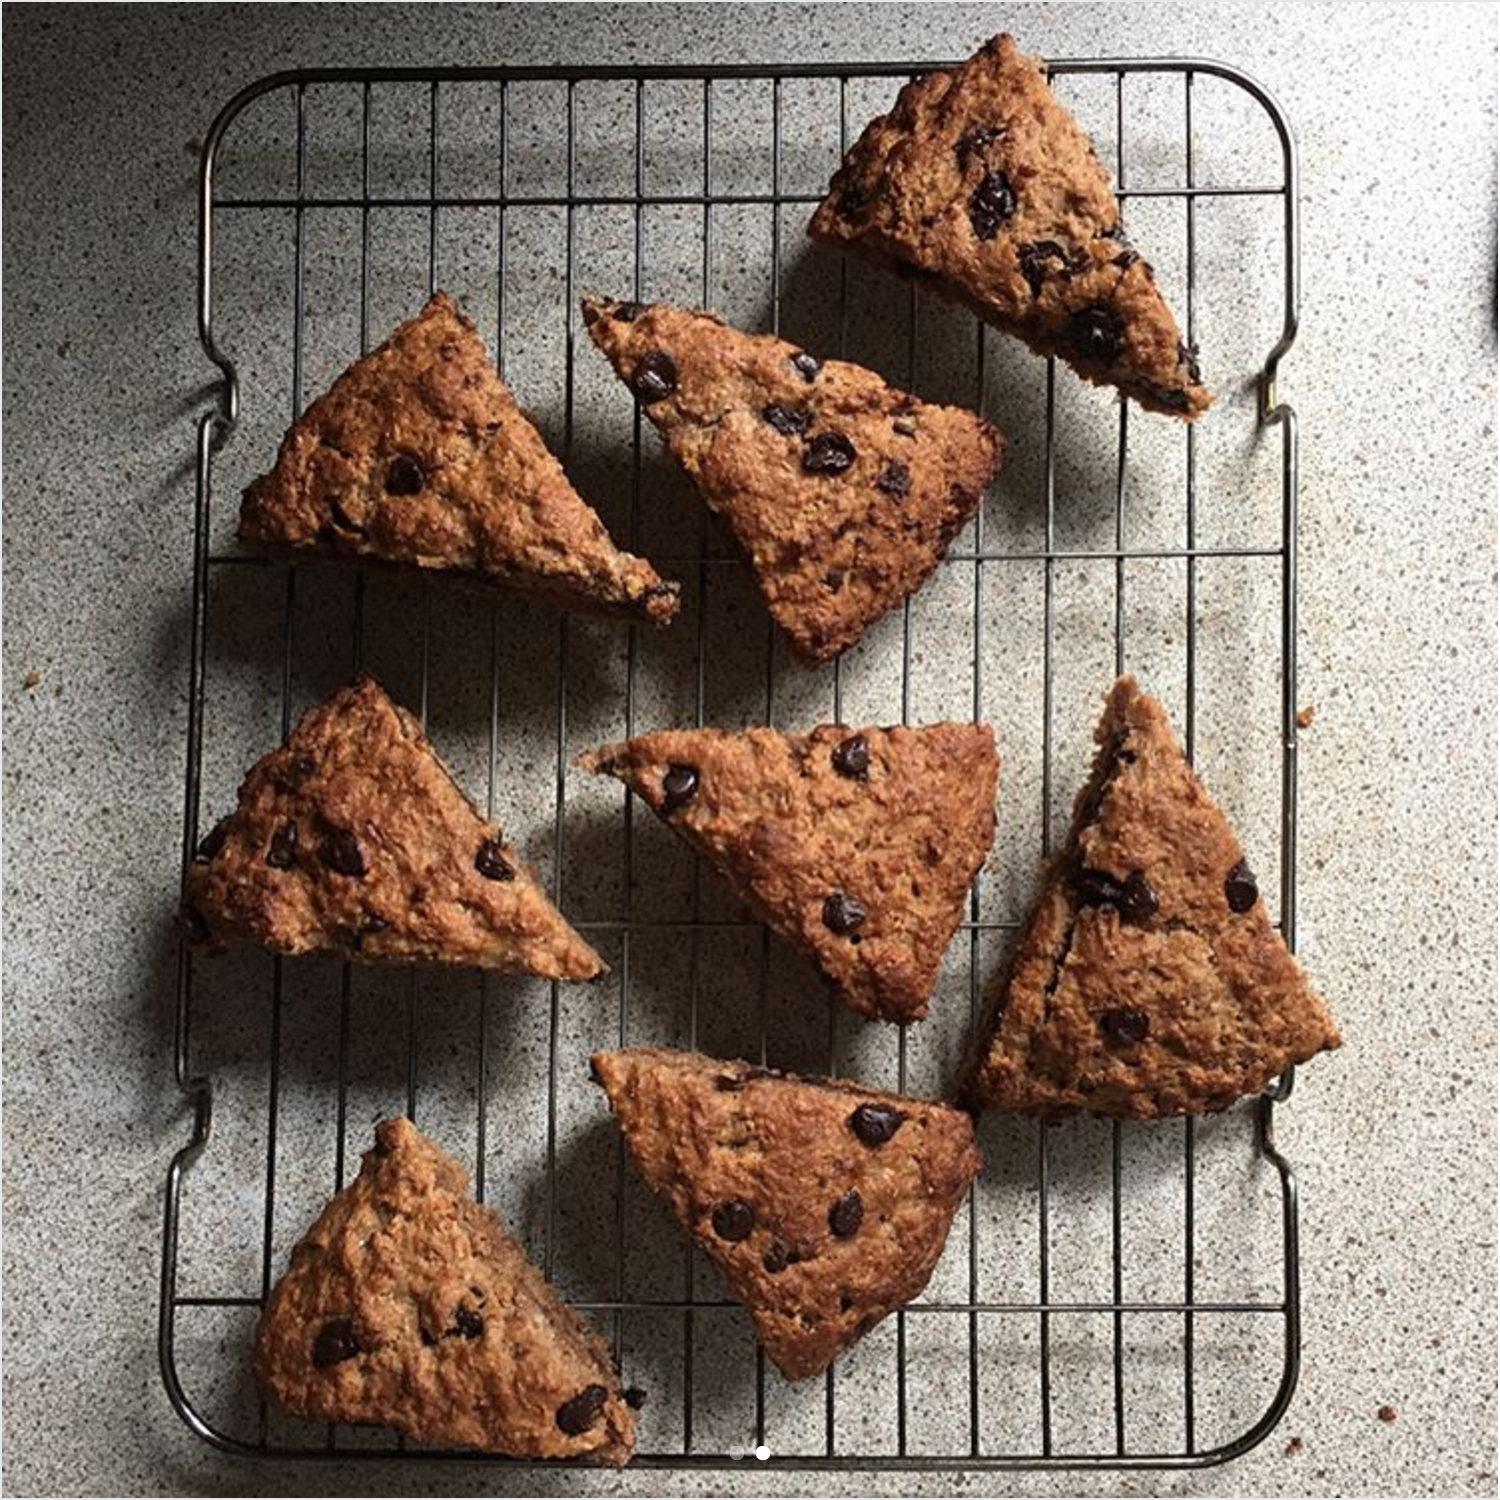 healthy chocolate chip banana bread scones by @hayleyr1403